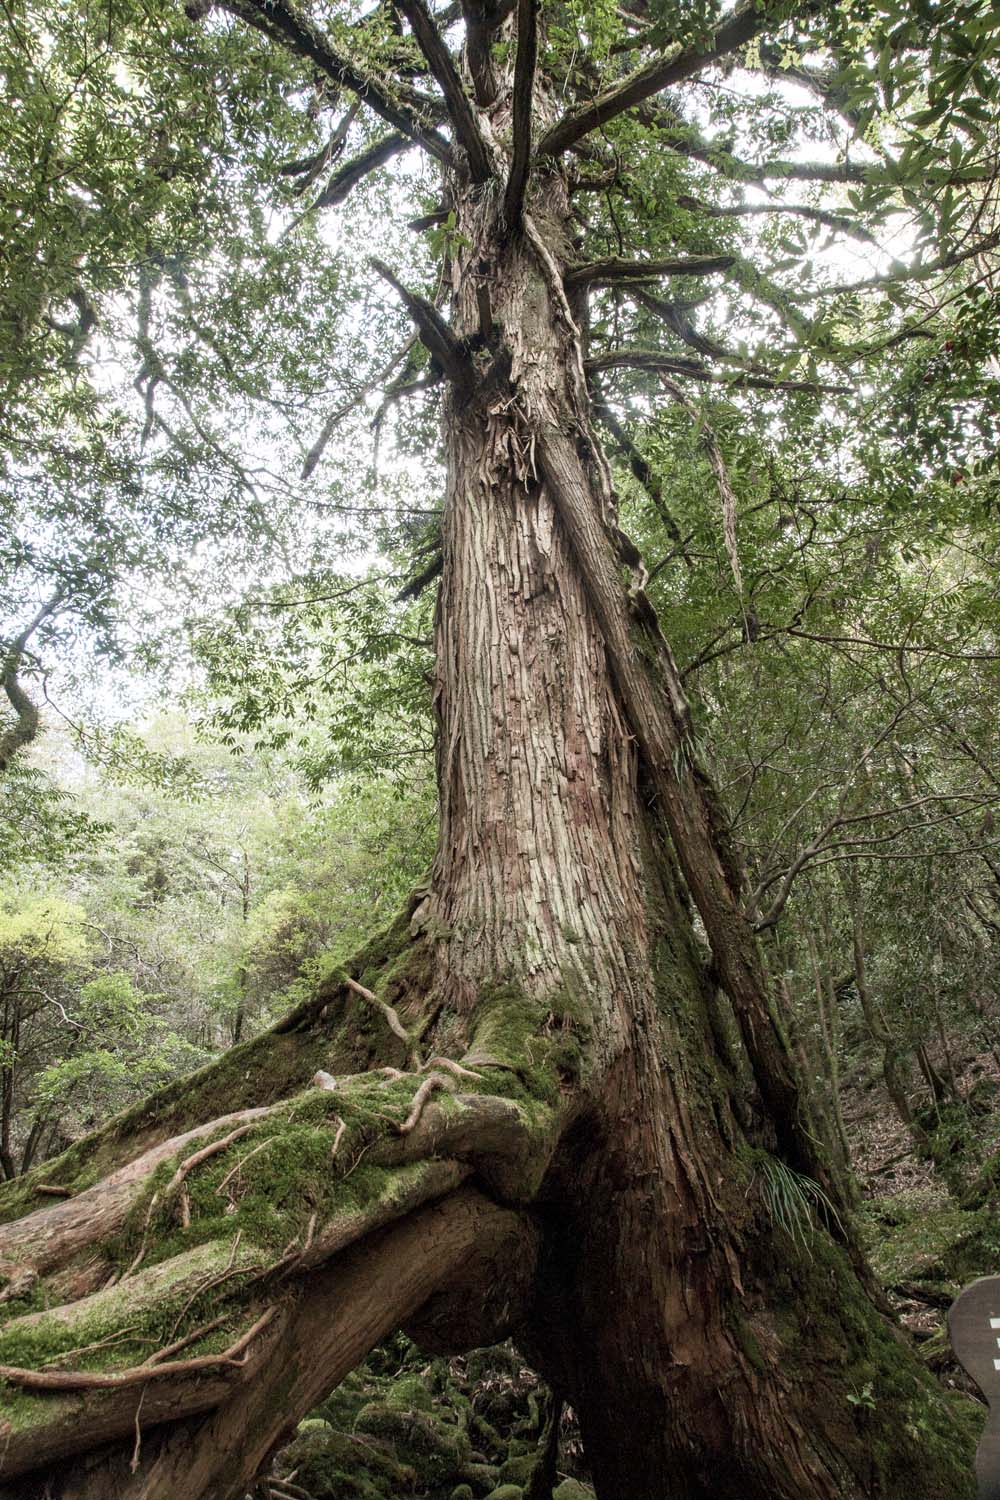 One of Yakushima's ancient trees